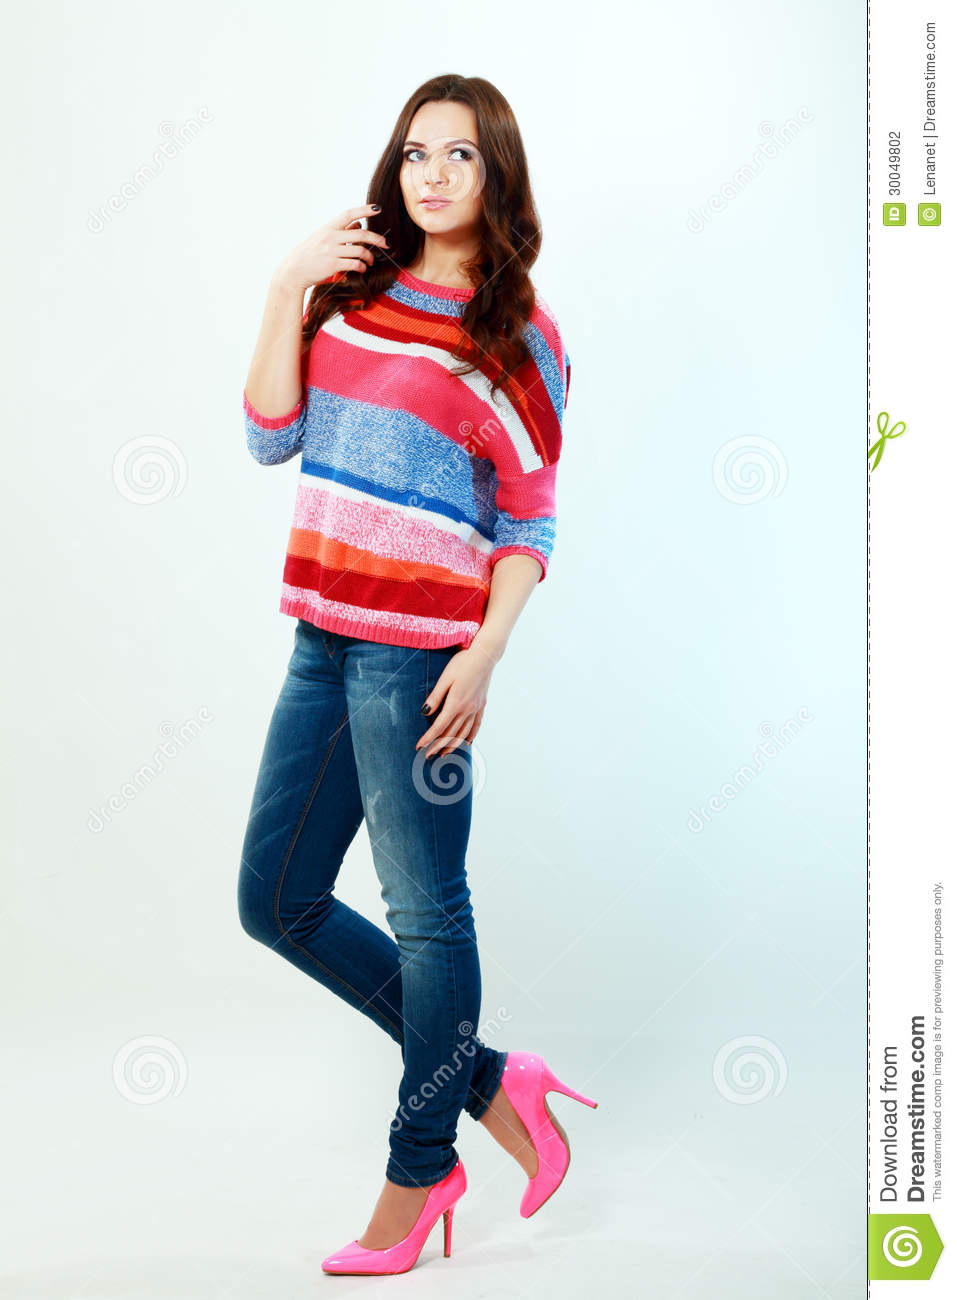 Girl In Fashion Stylish Jeans Stock Photography Image